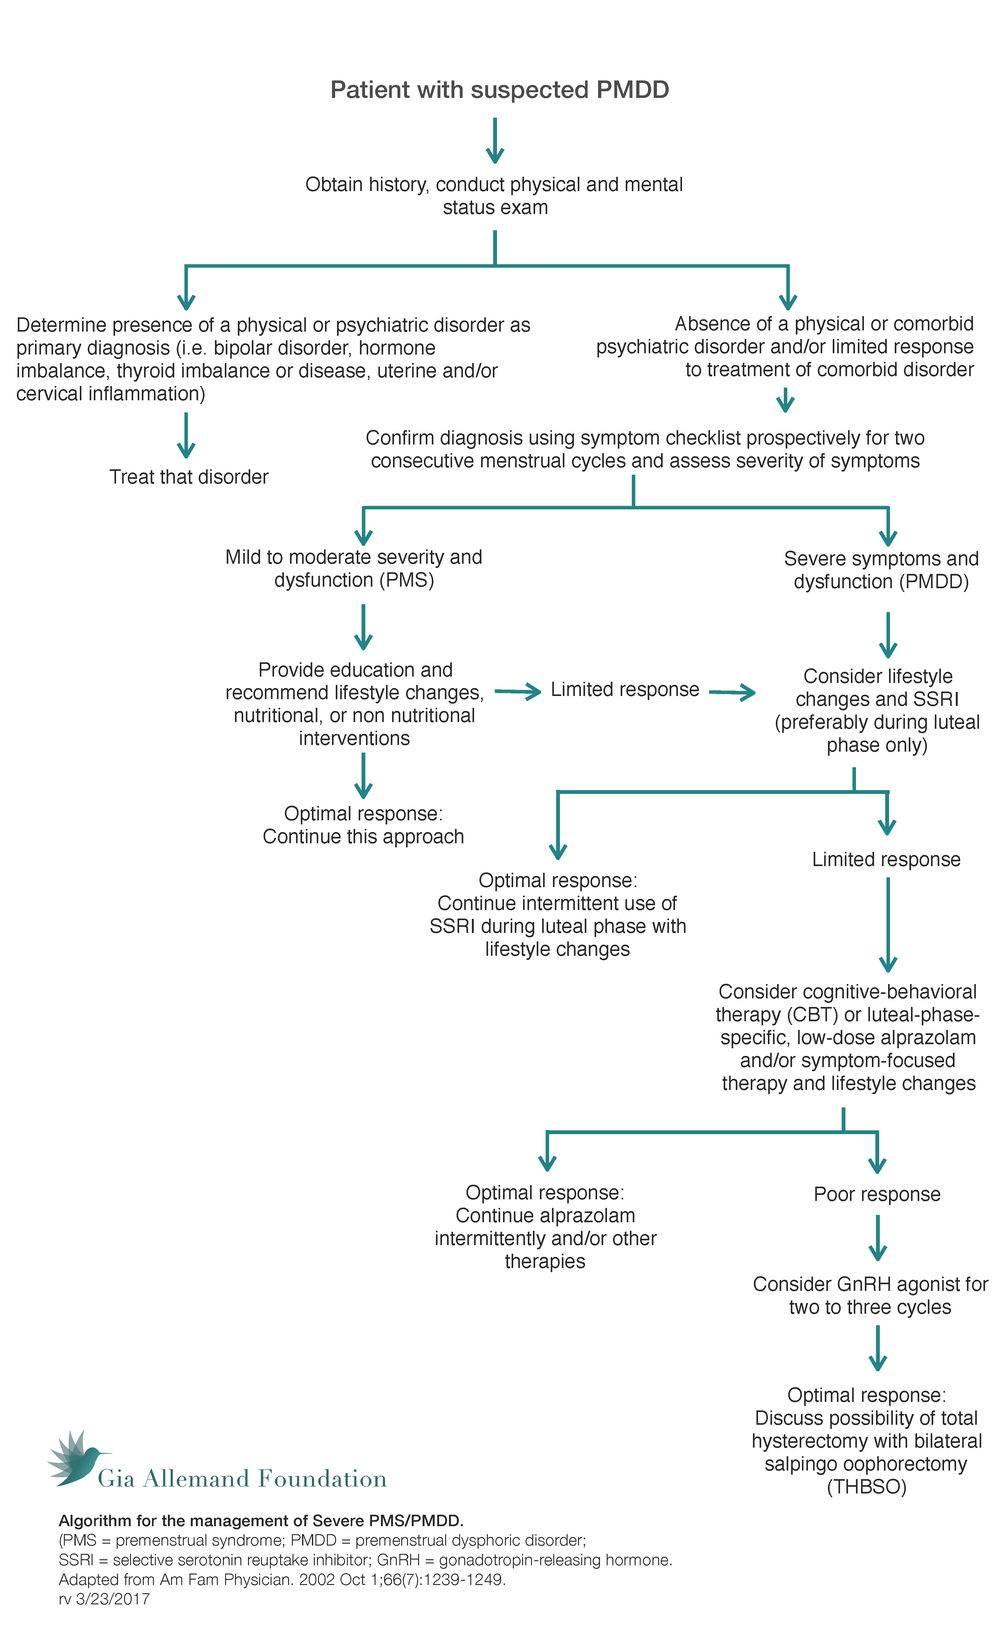 Algorithm for the management of PMDD.png